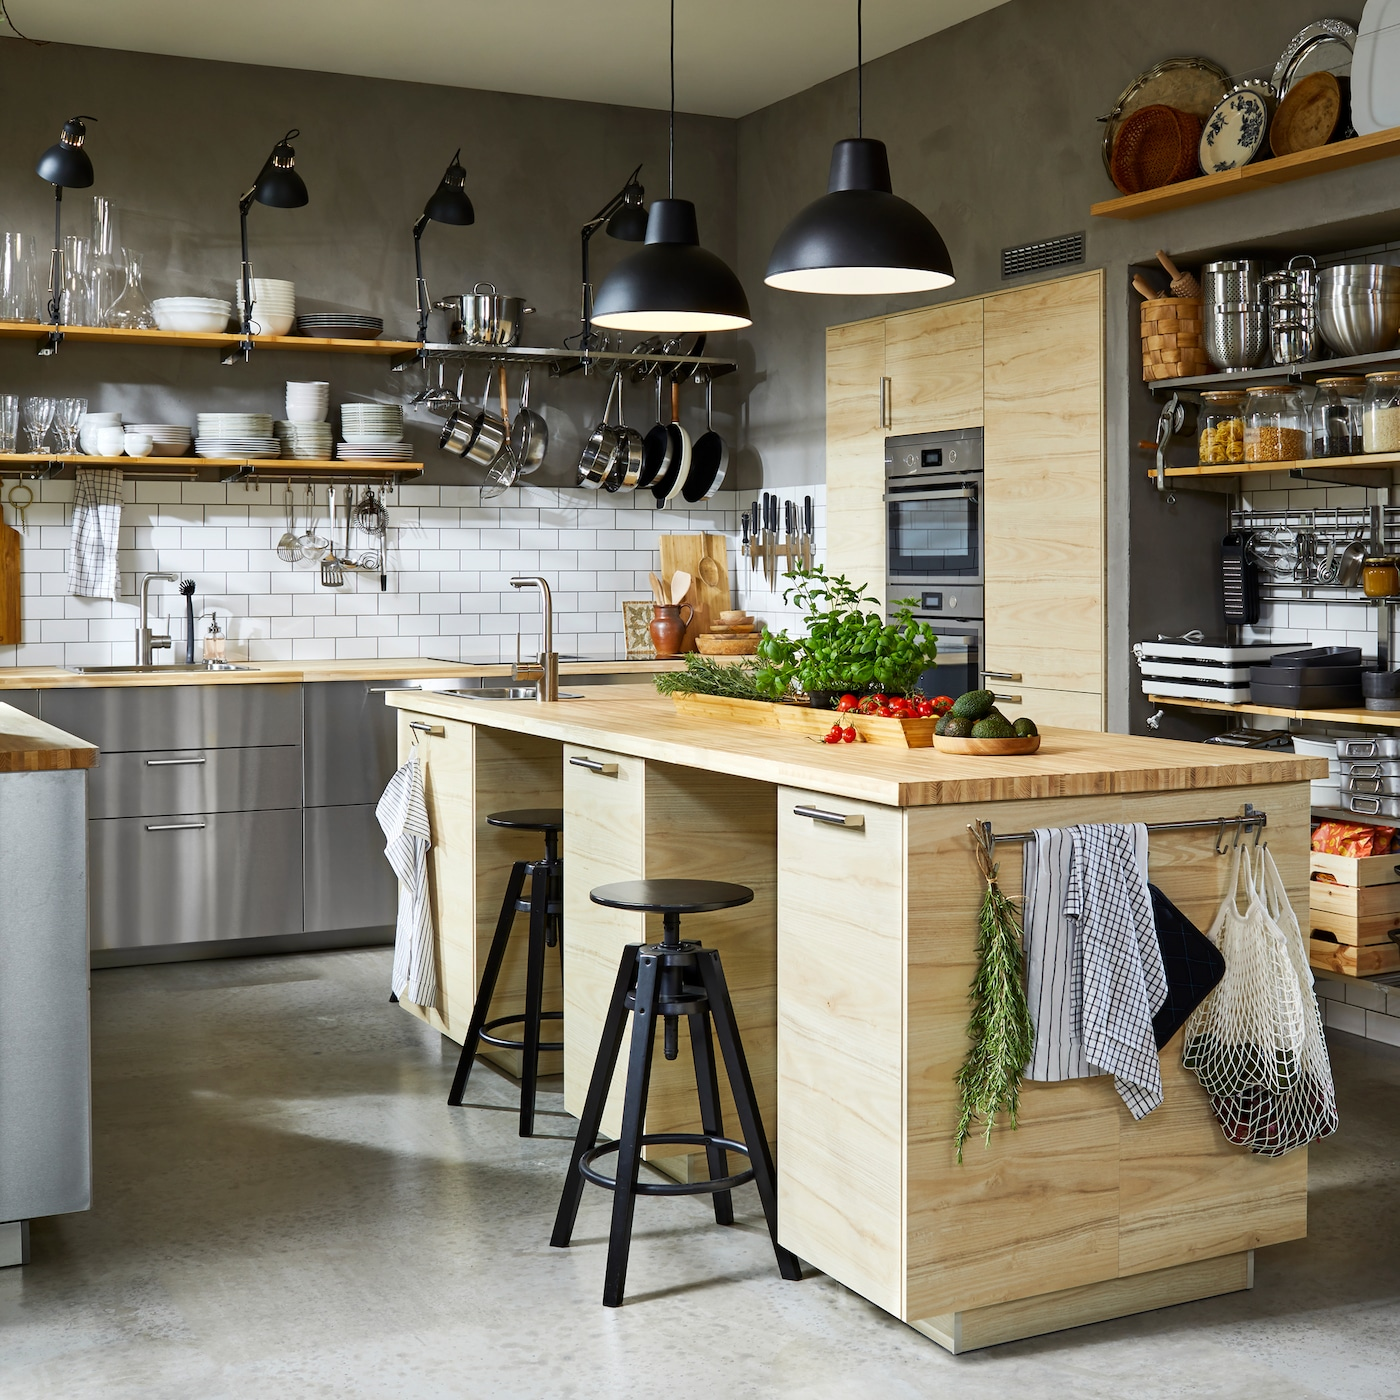 A kitchen with fronts in stainless steel, two black pendant lamps and a spacious kitchen island with two black bar stools.